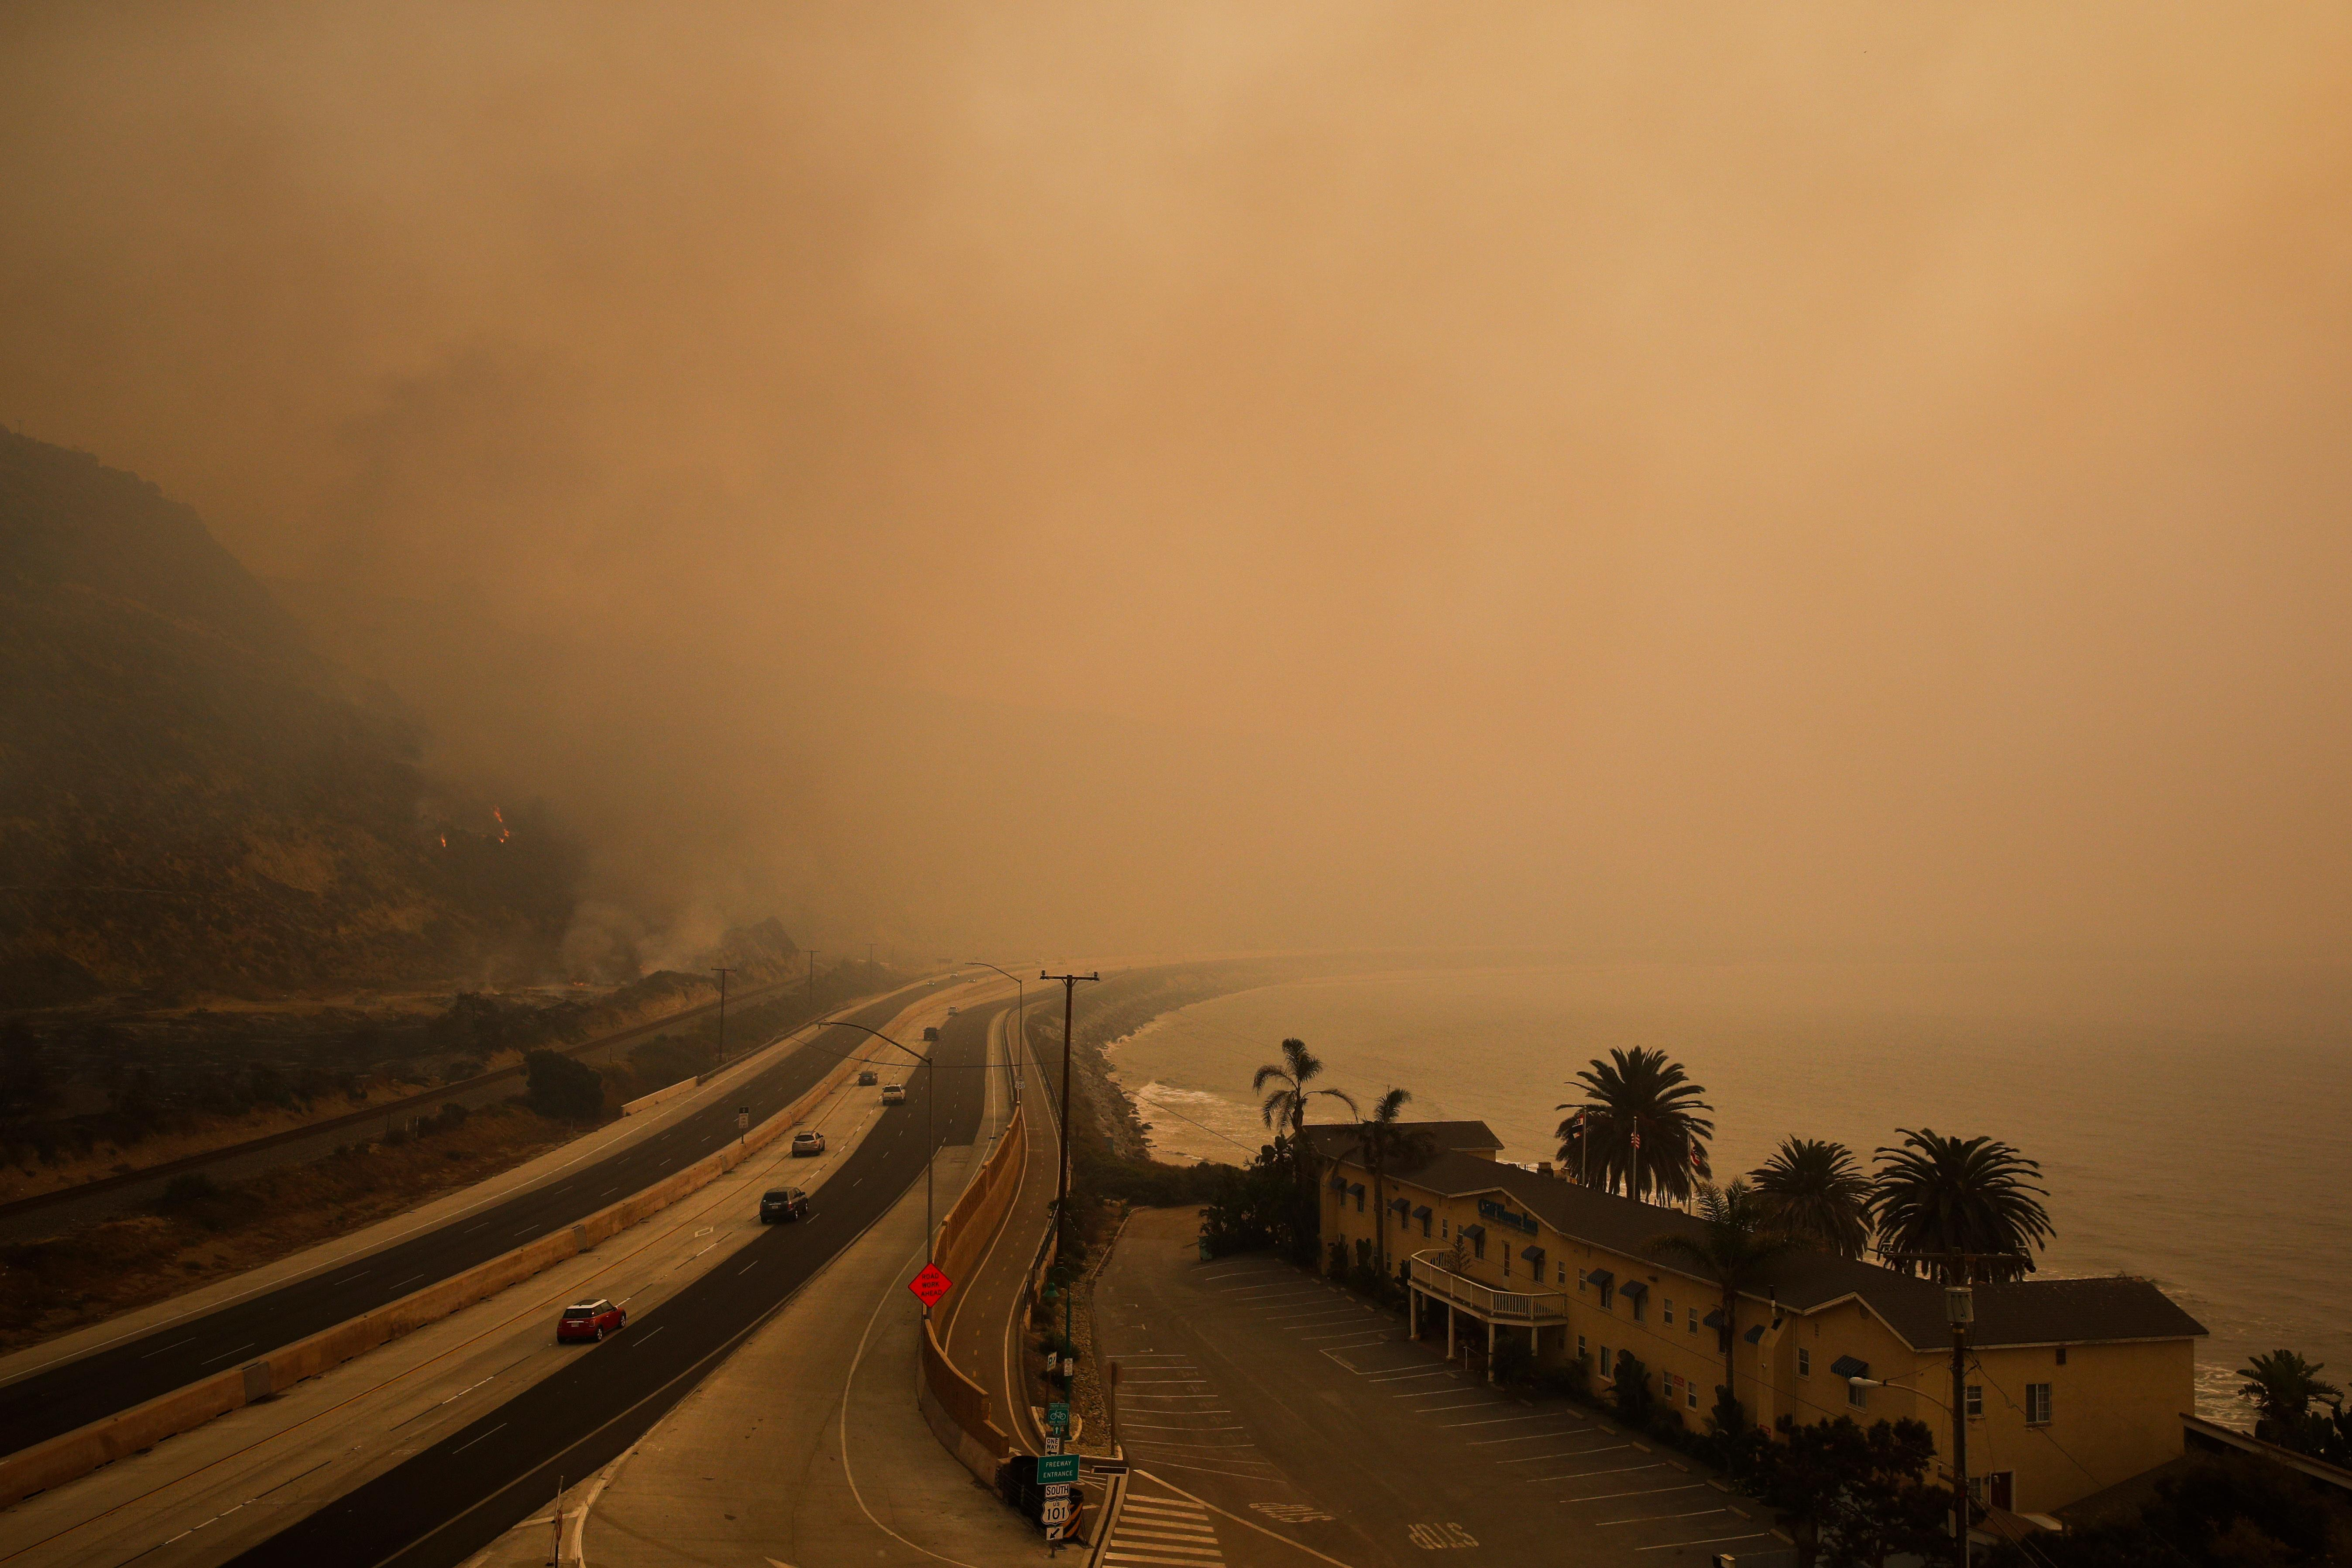 Traffic moves along the 101 Freeway as smoke from a wildfire fills the air in Ventura, Calif., Thursday, Dec. 7, 2017. The wind-swept blazes have forced tens of thousands of evacuations and destroyed dozens of homes. (AP Photo/Jae C. Hong)